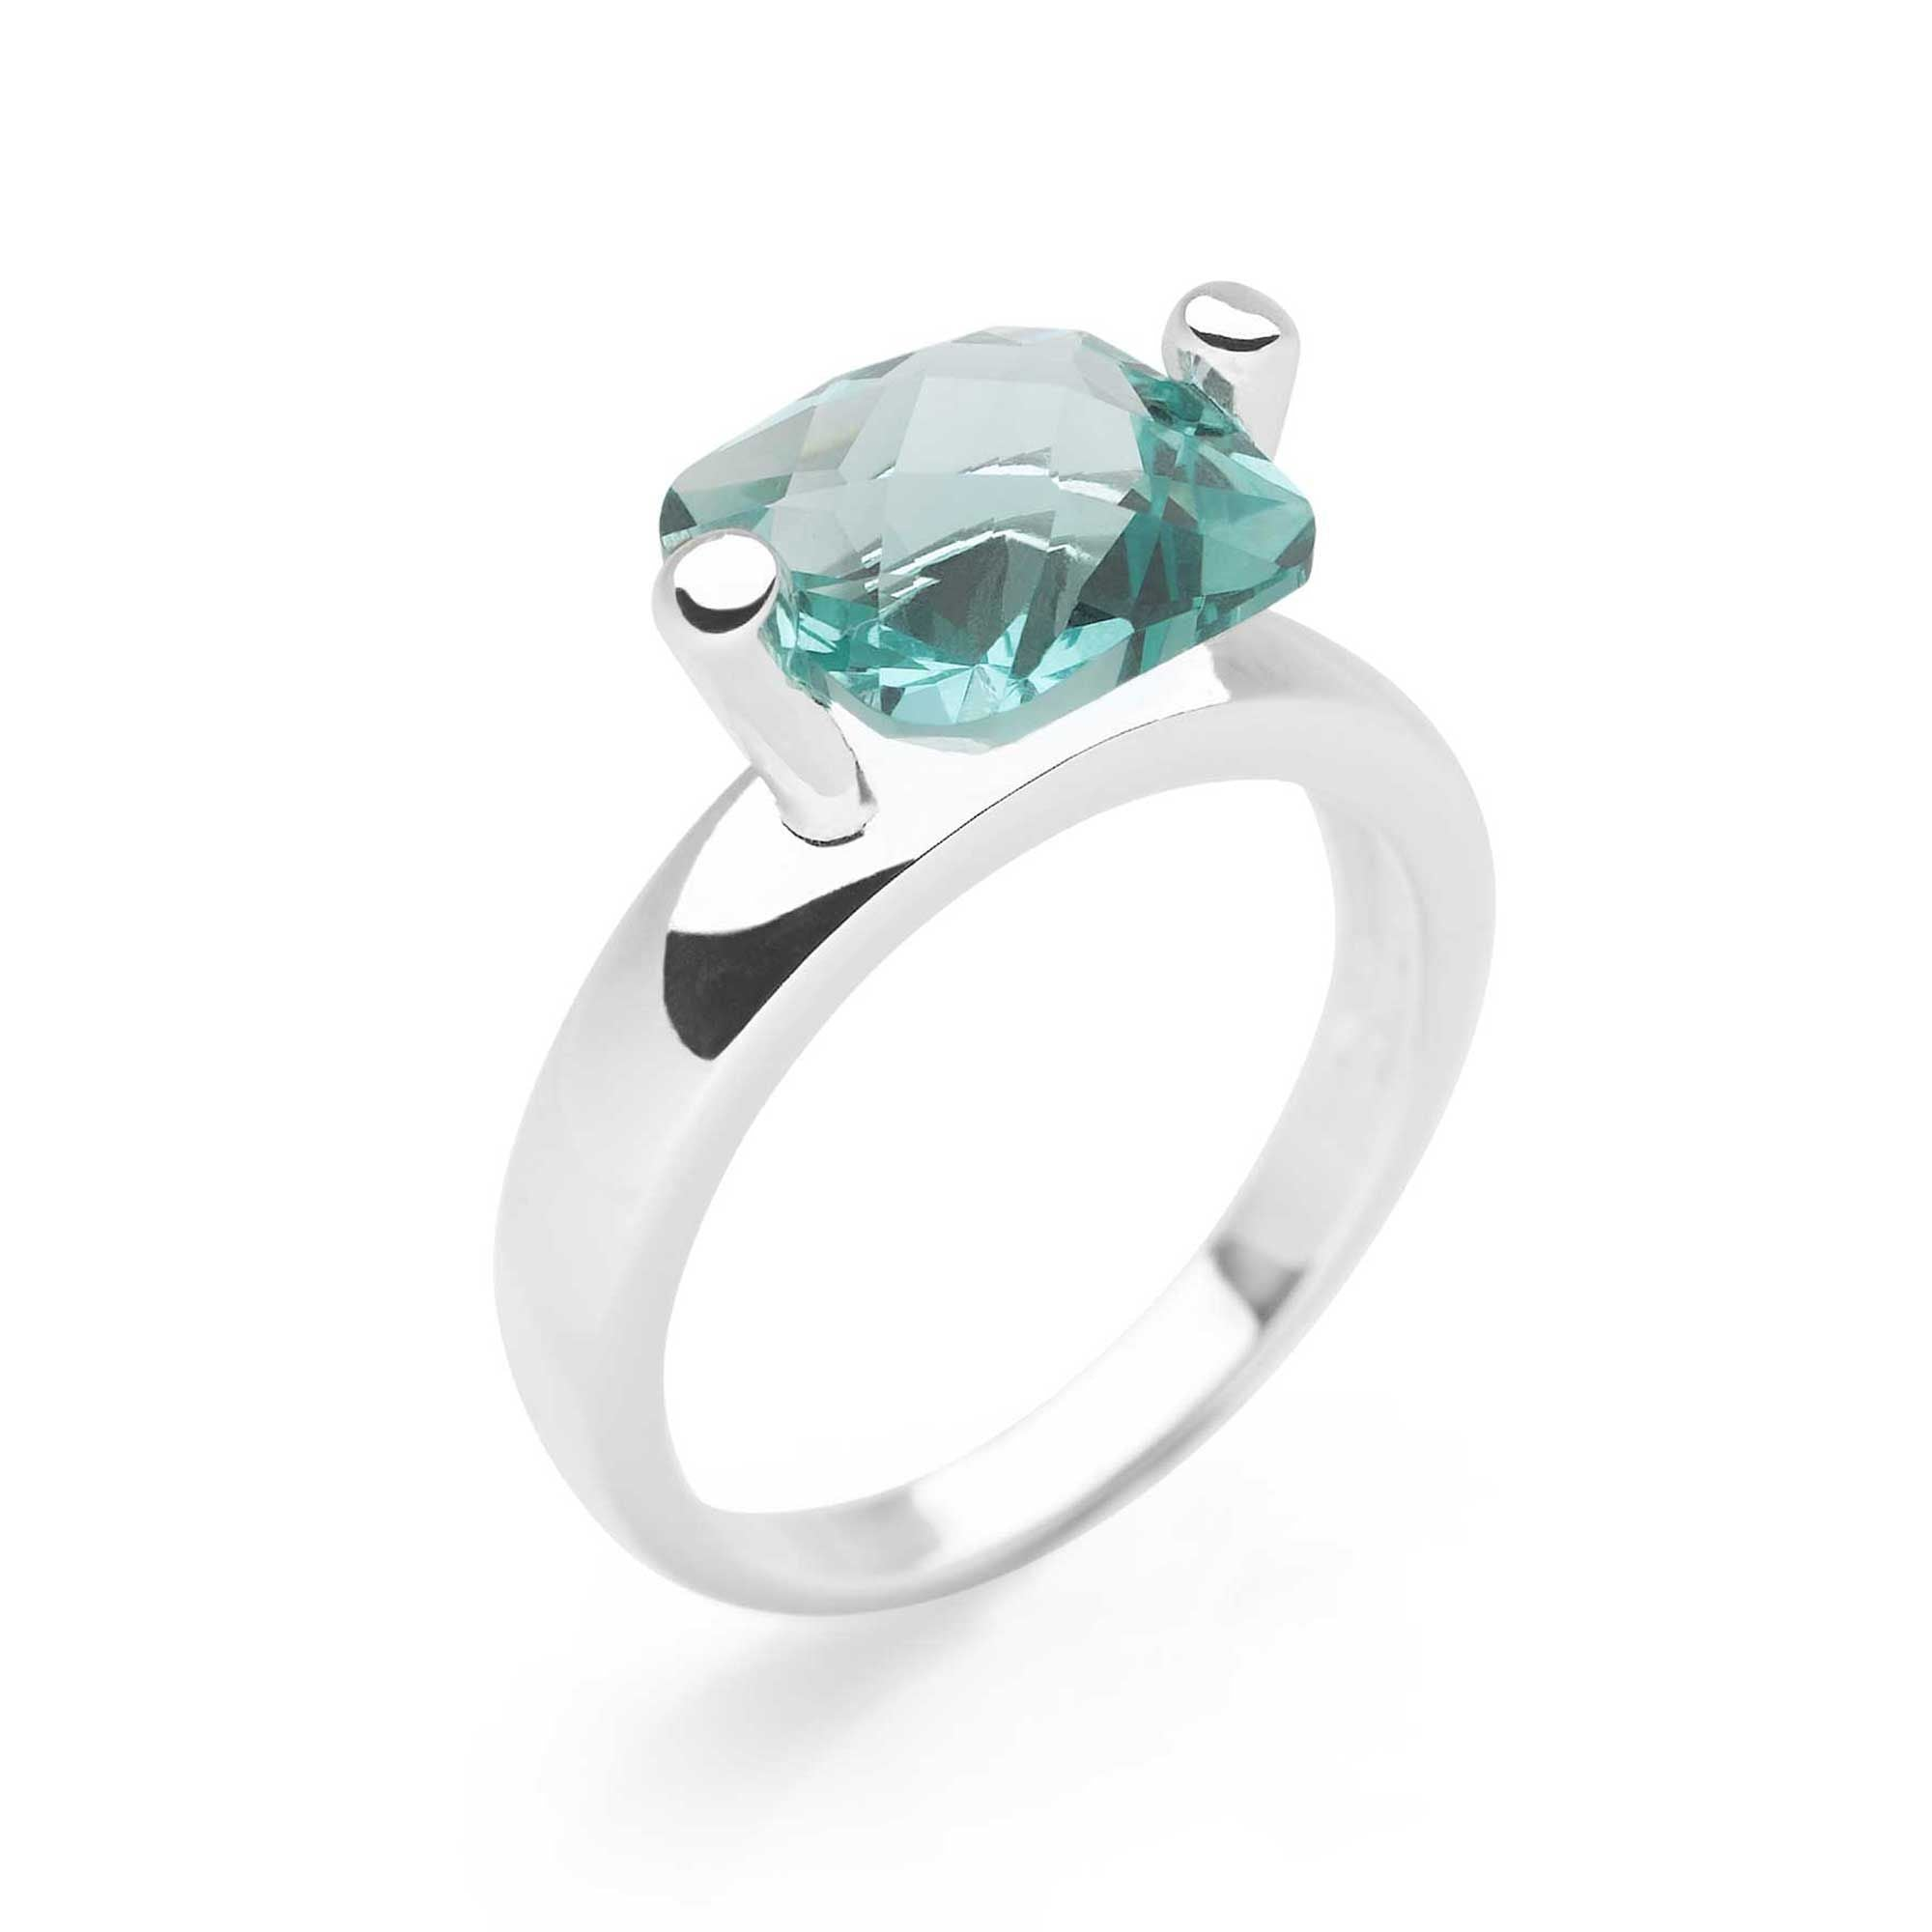 Green Obsidian,set in twin 925 sterling silver clasp ring (R20251)